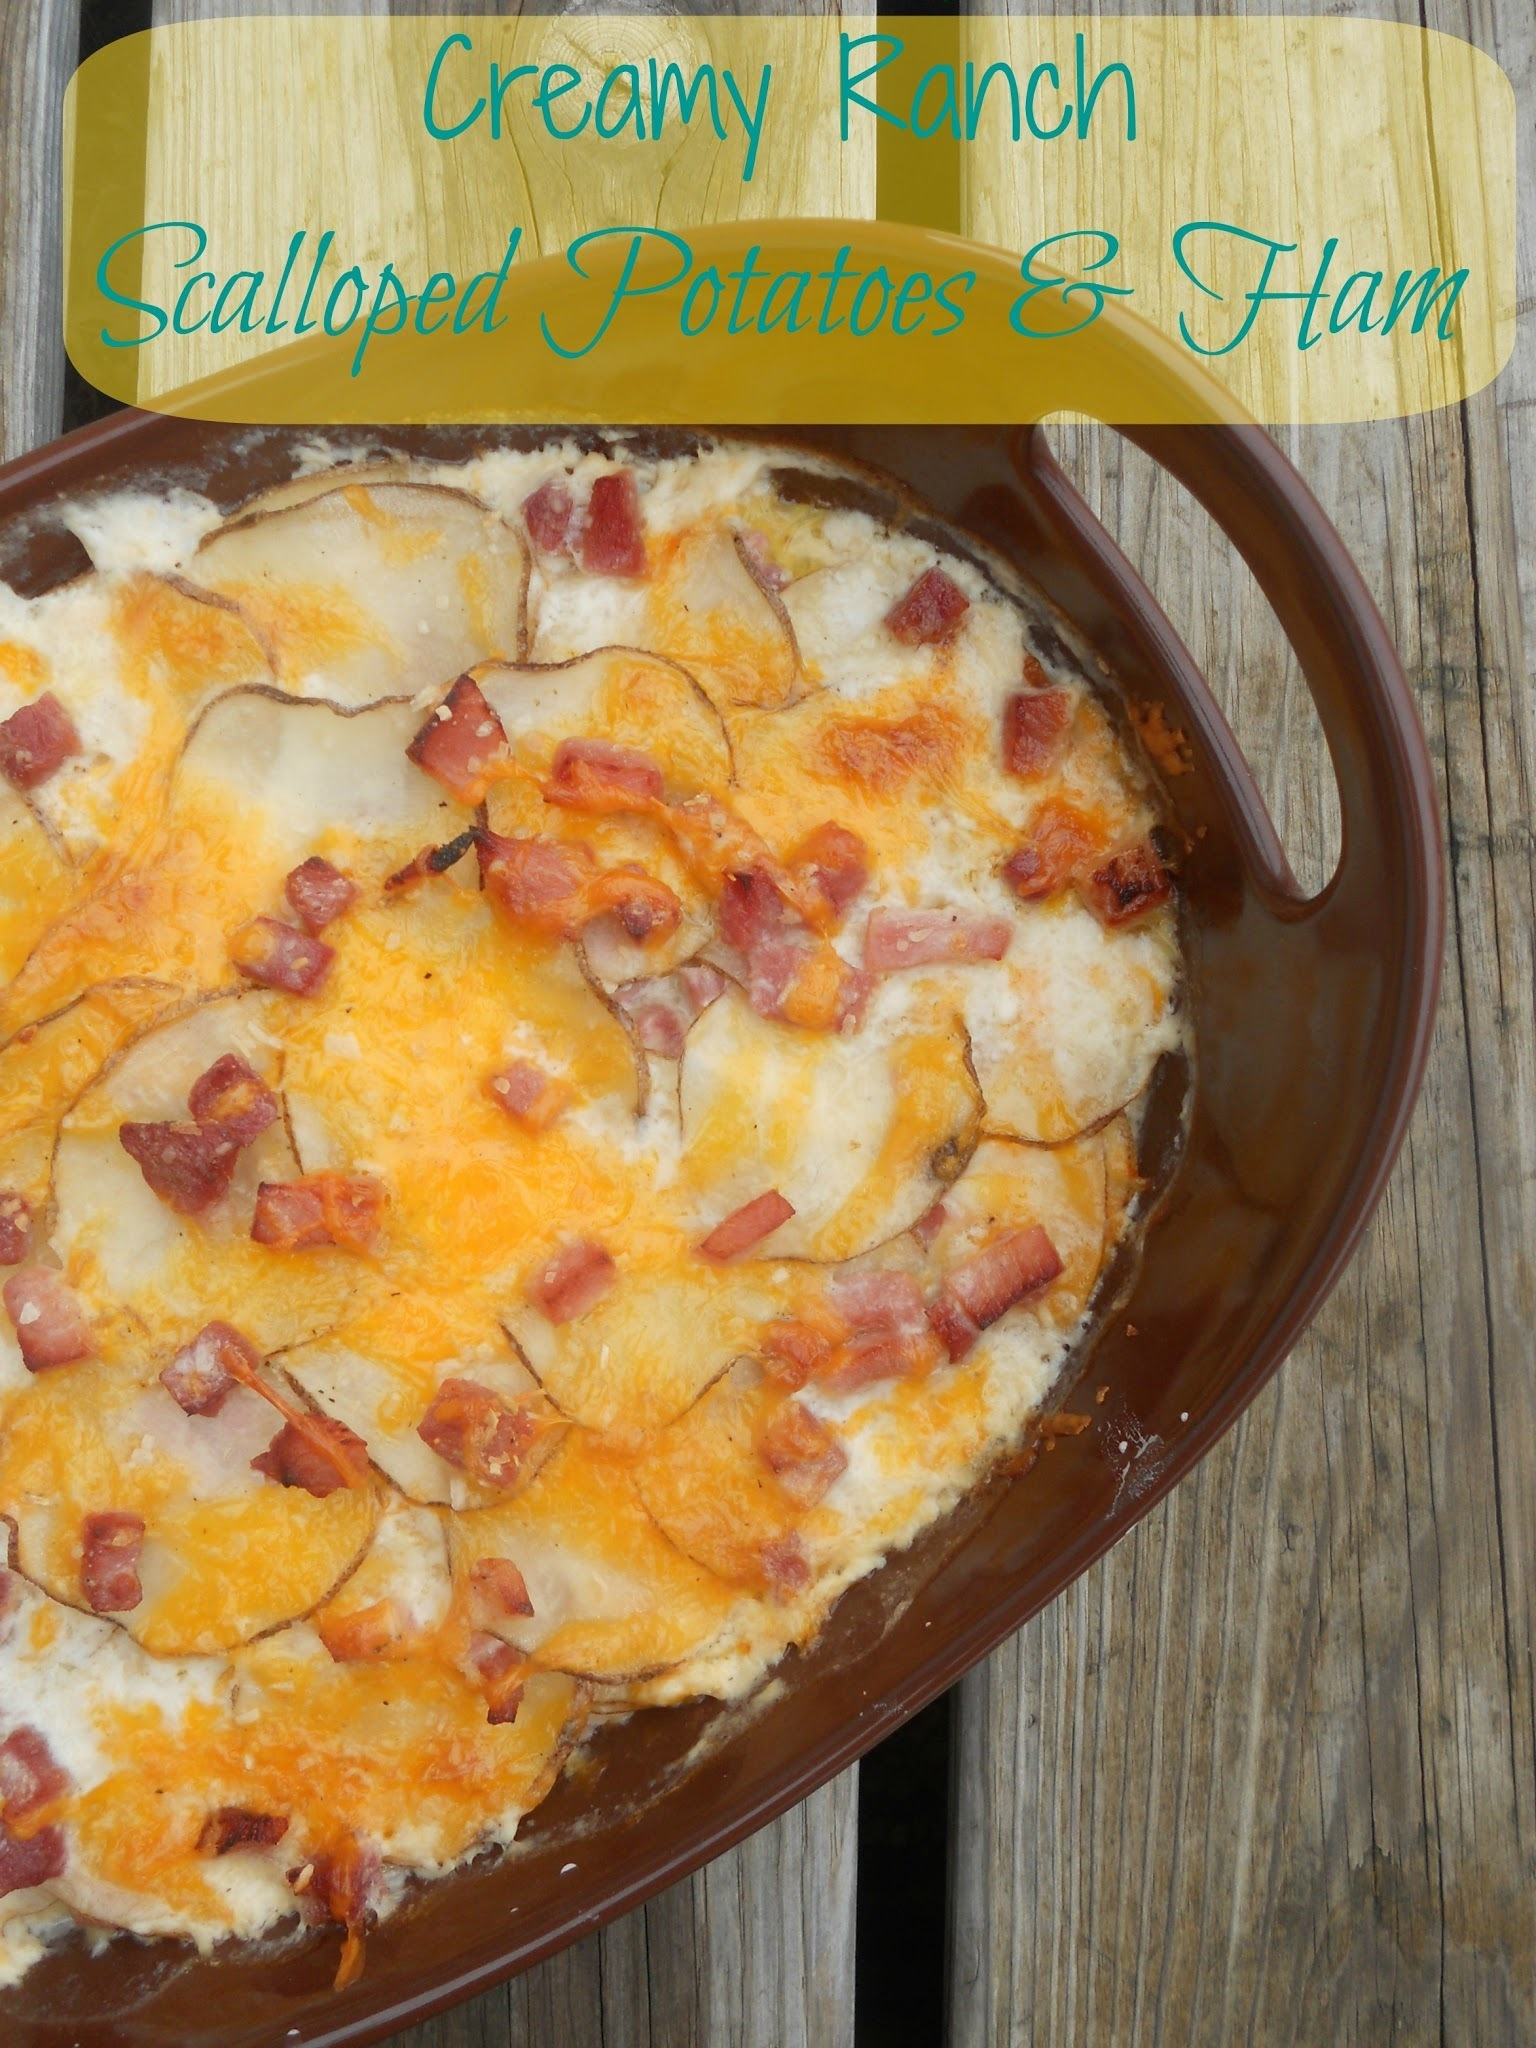 Creamy Ranch Scalloped Potatoes and Ham